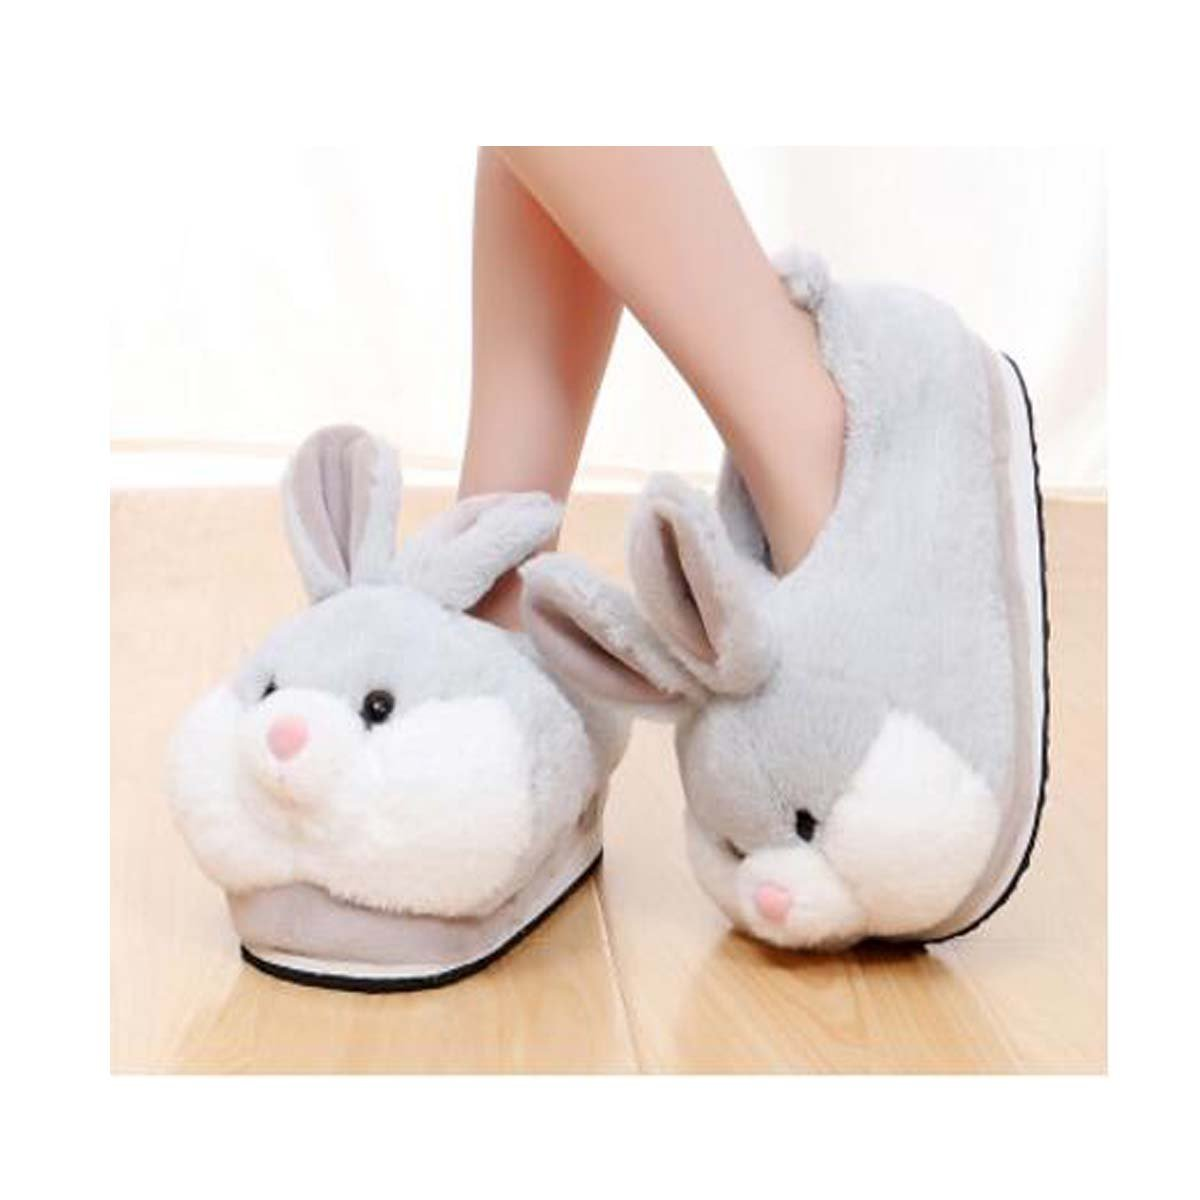 Cute bunny slippers, winter home warm slippery cotton slippers